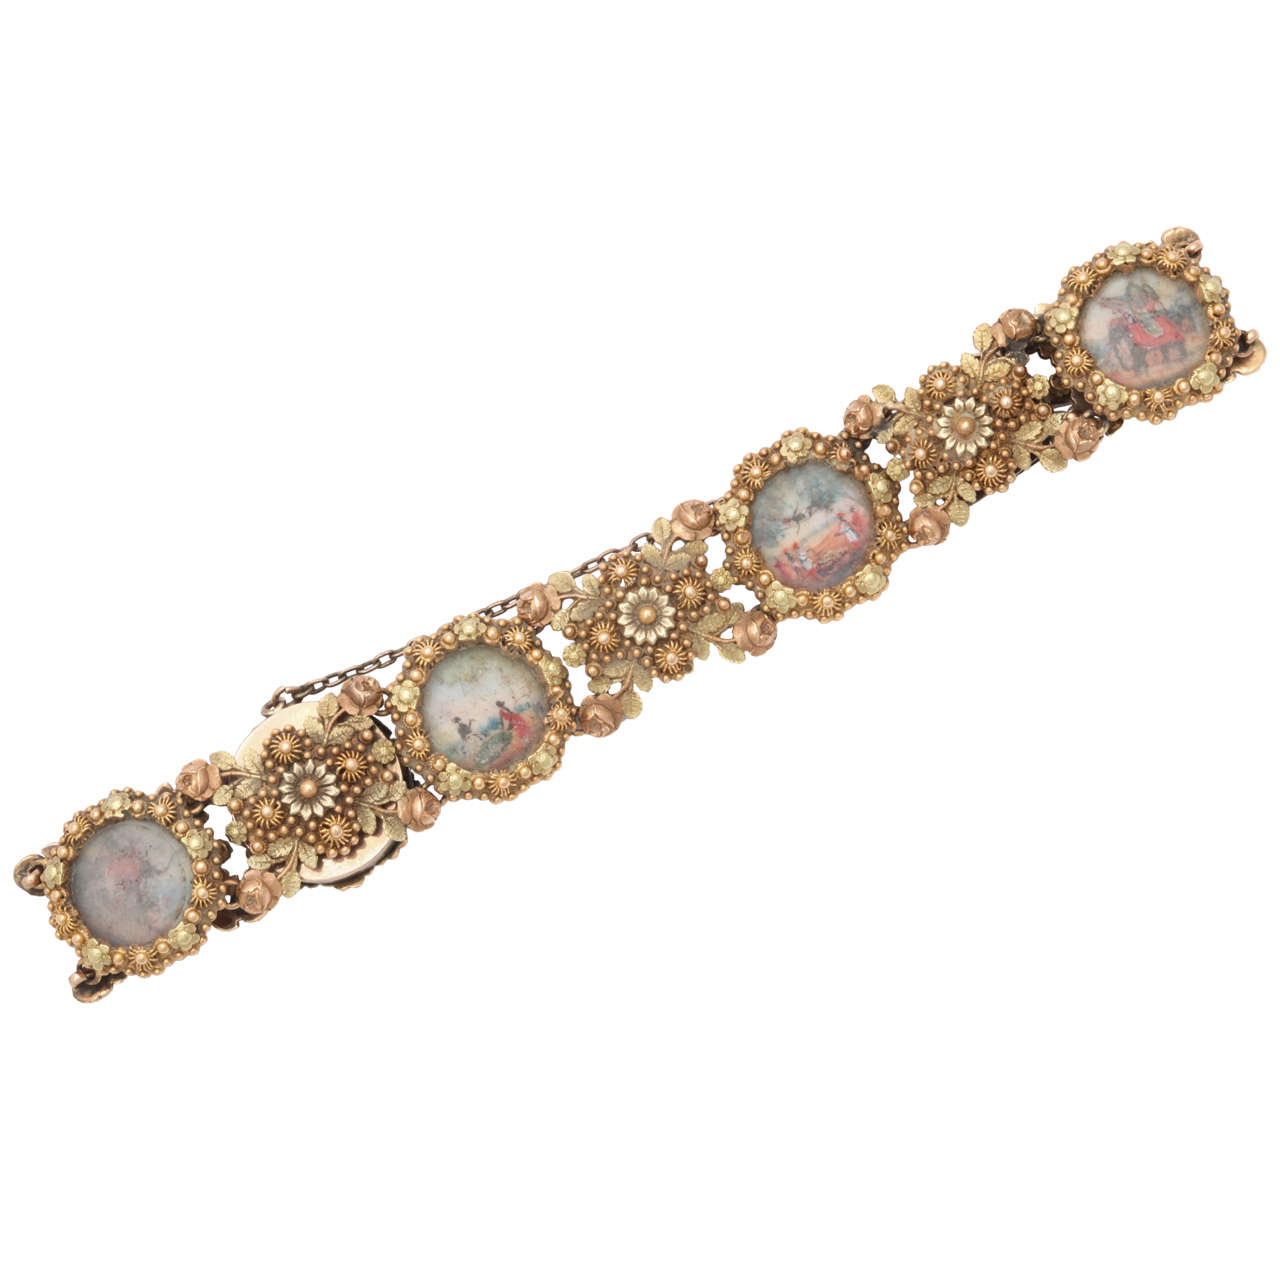 Early Colonial Painted Miniature Gold Filigree Bracelet For